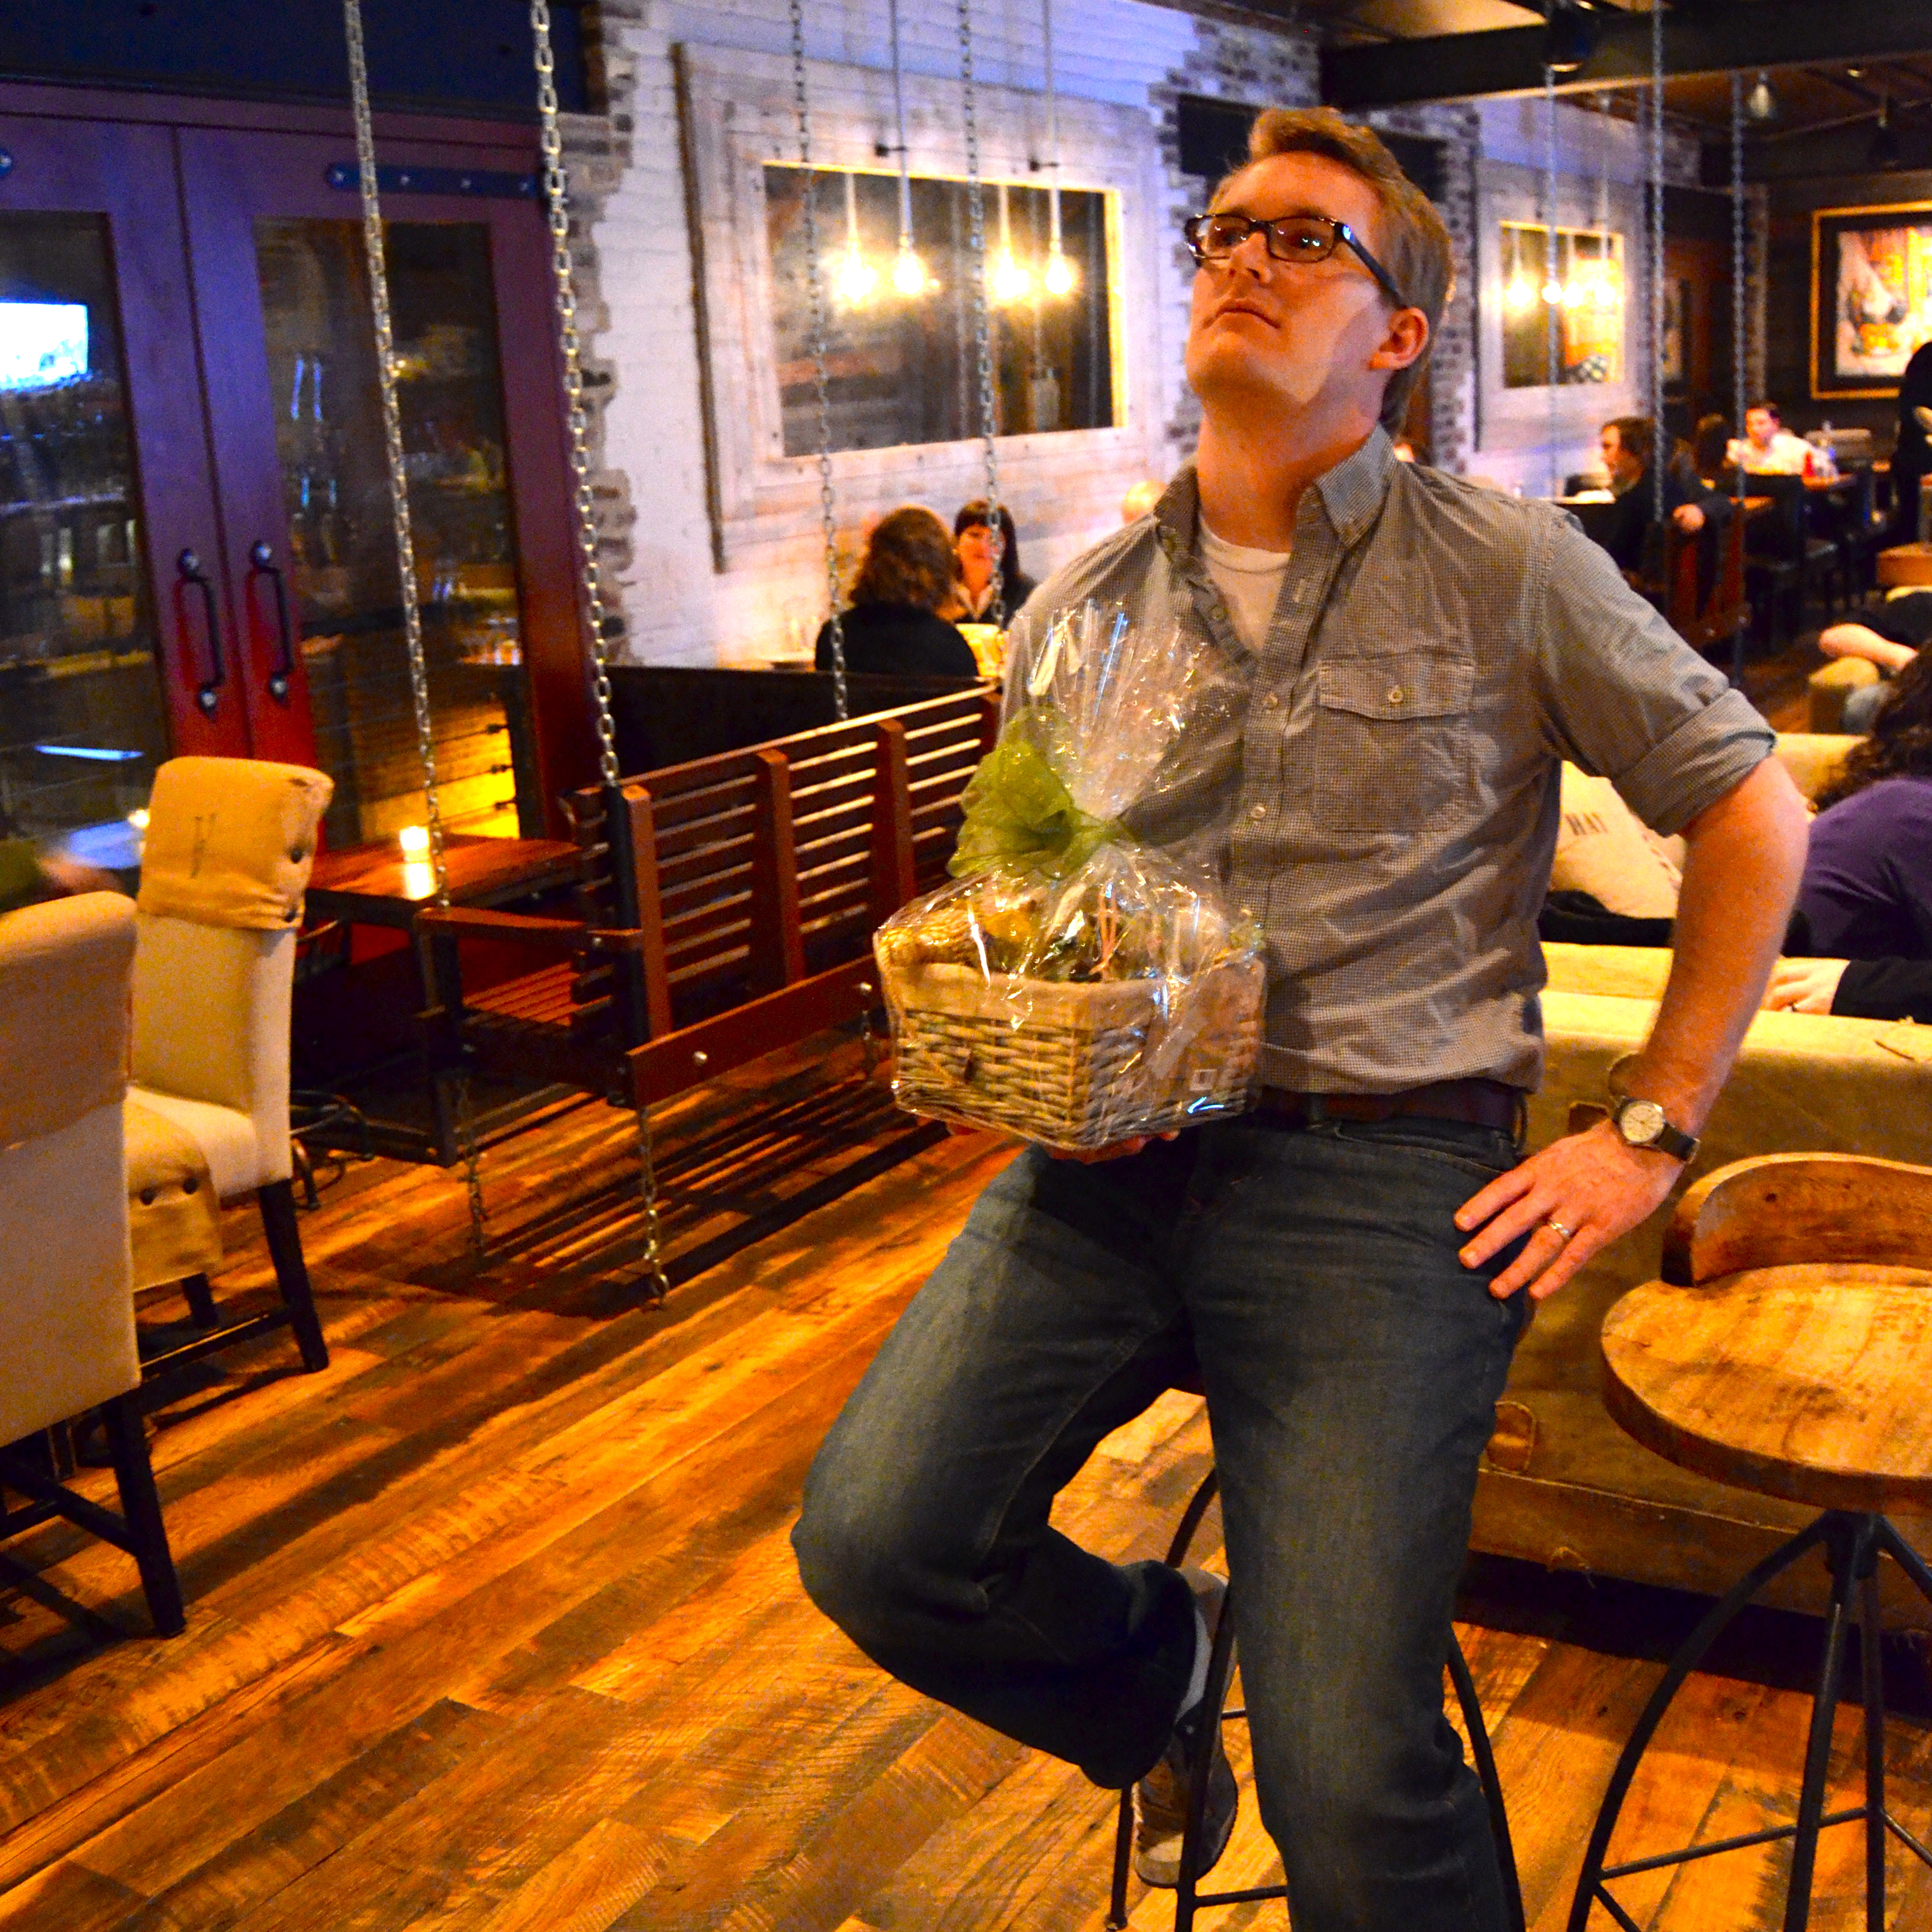 The easter basket after orange county the easter basket afterorangecounty negle Gallery